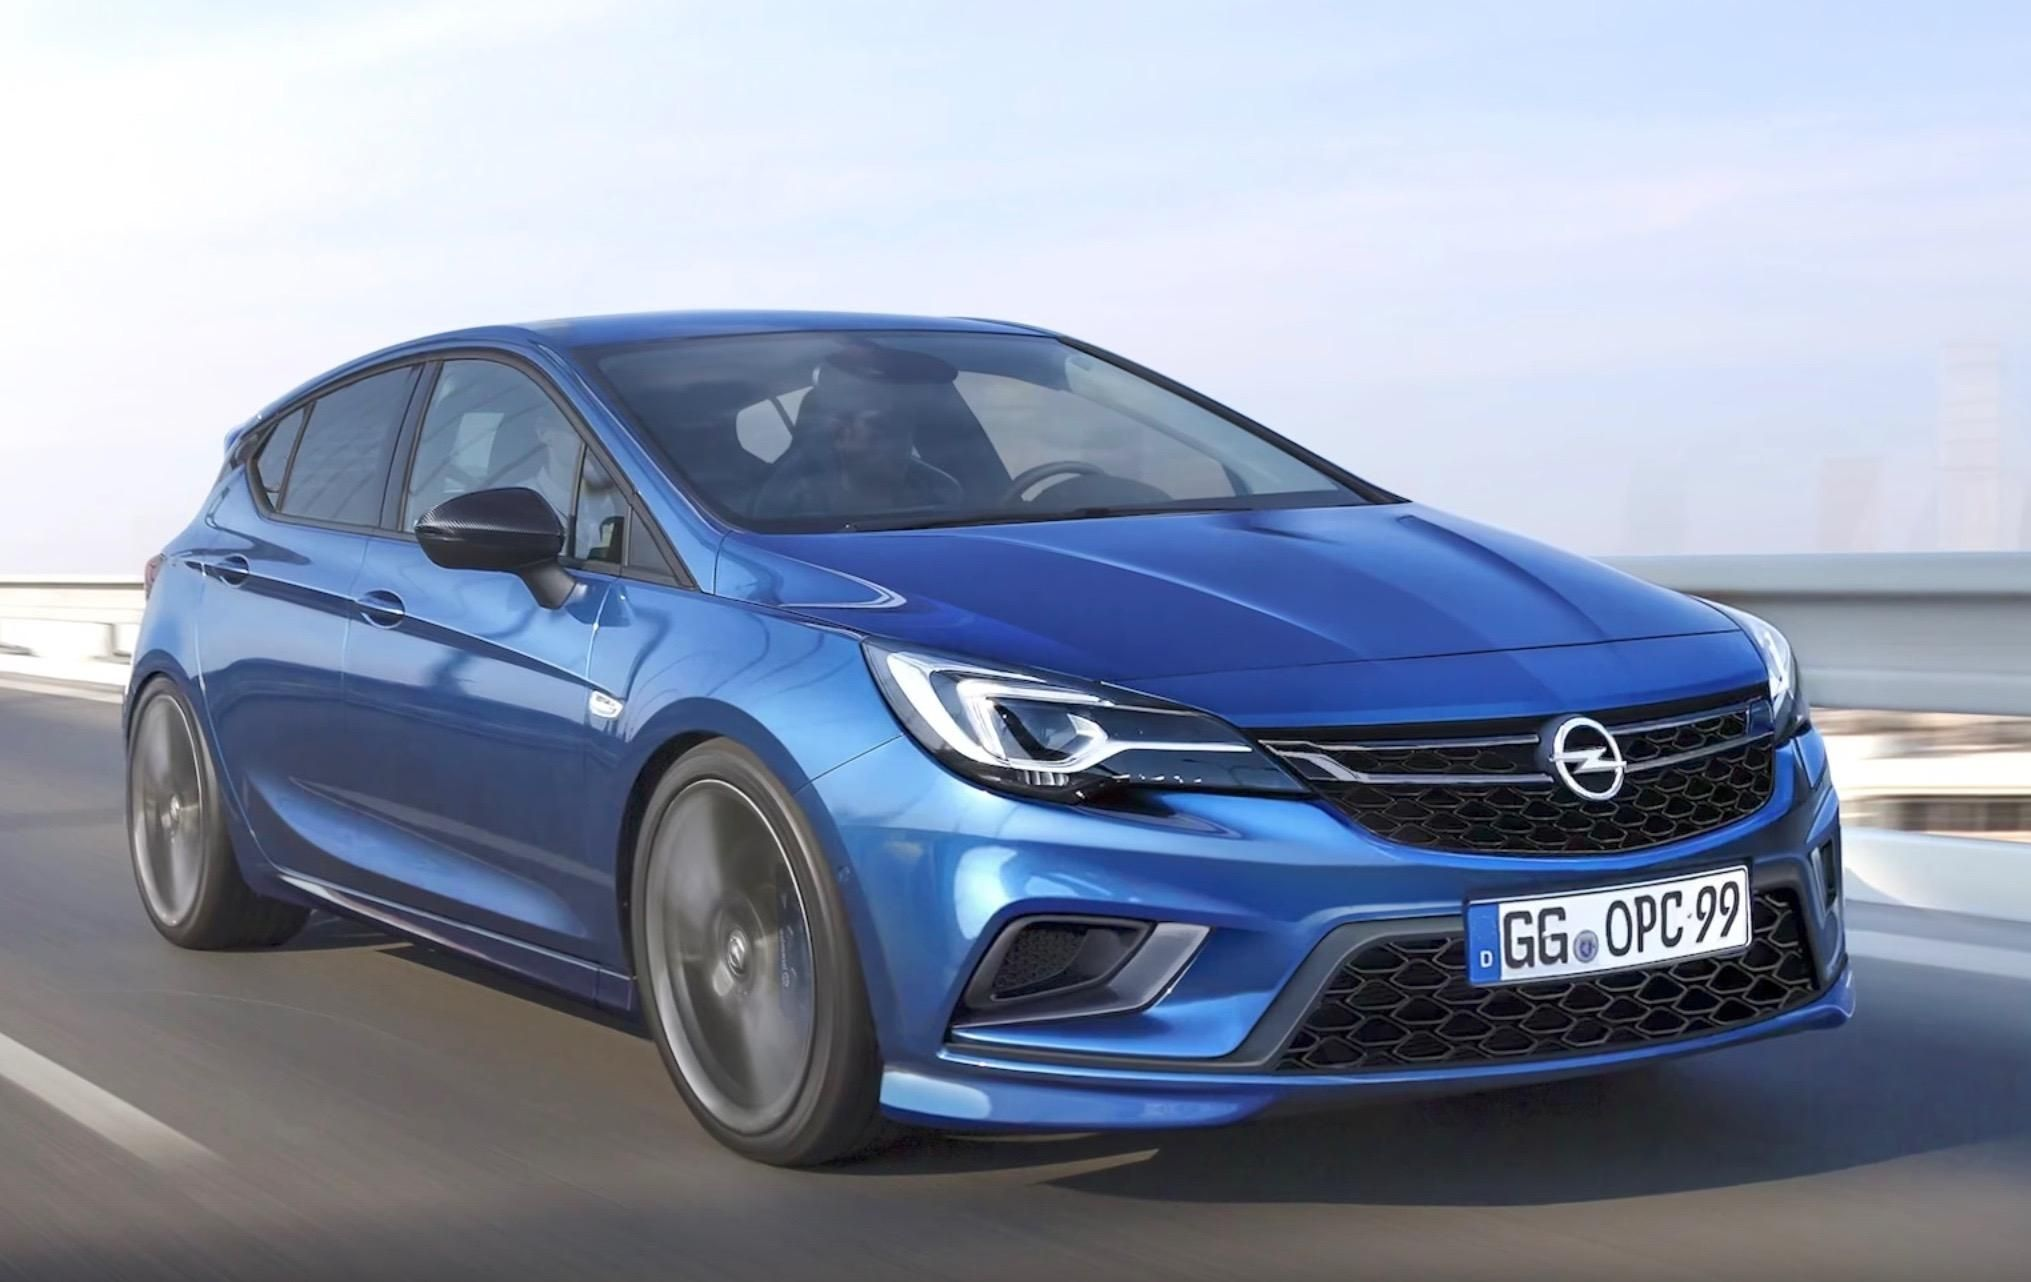 2018 Opel Astra Opc In The Works Getting 300hp 1 6 Turbo Report Intended For 2019 Opel Astra Volkswagen Otomobil Direksiyon